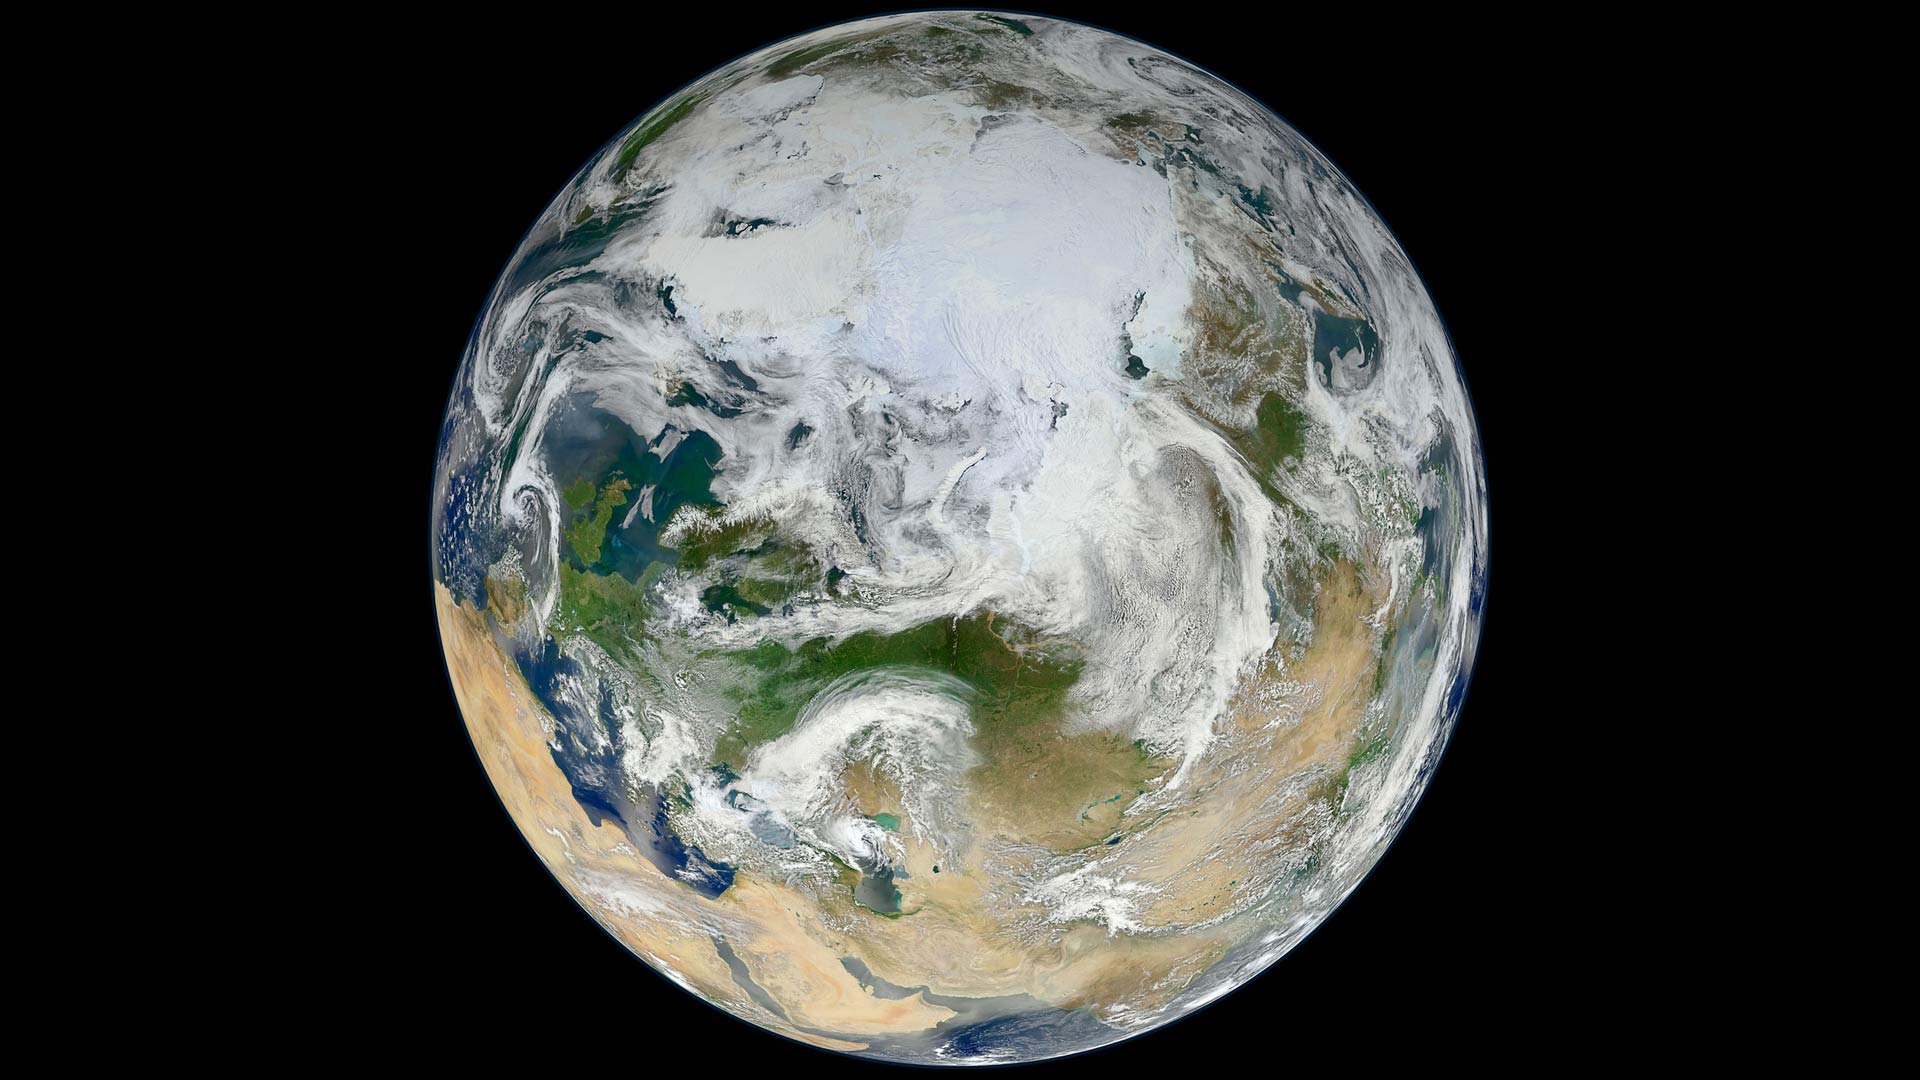 Earth's North Polar region.